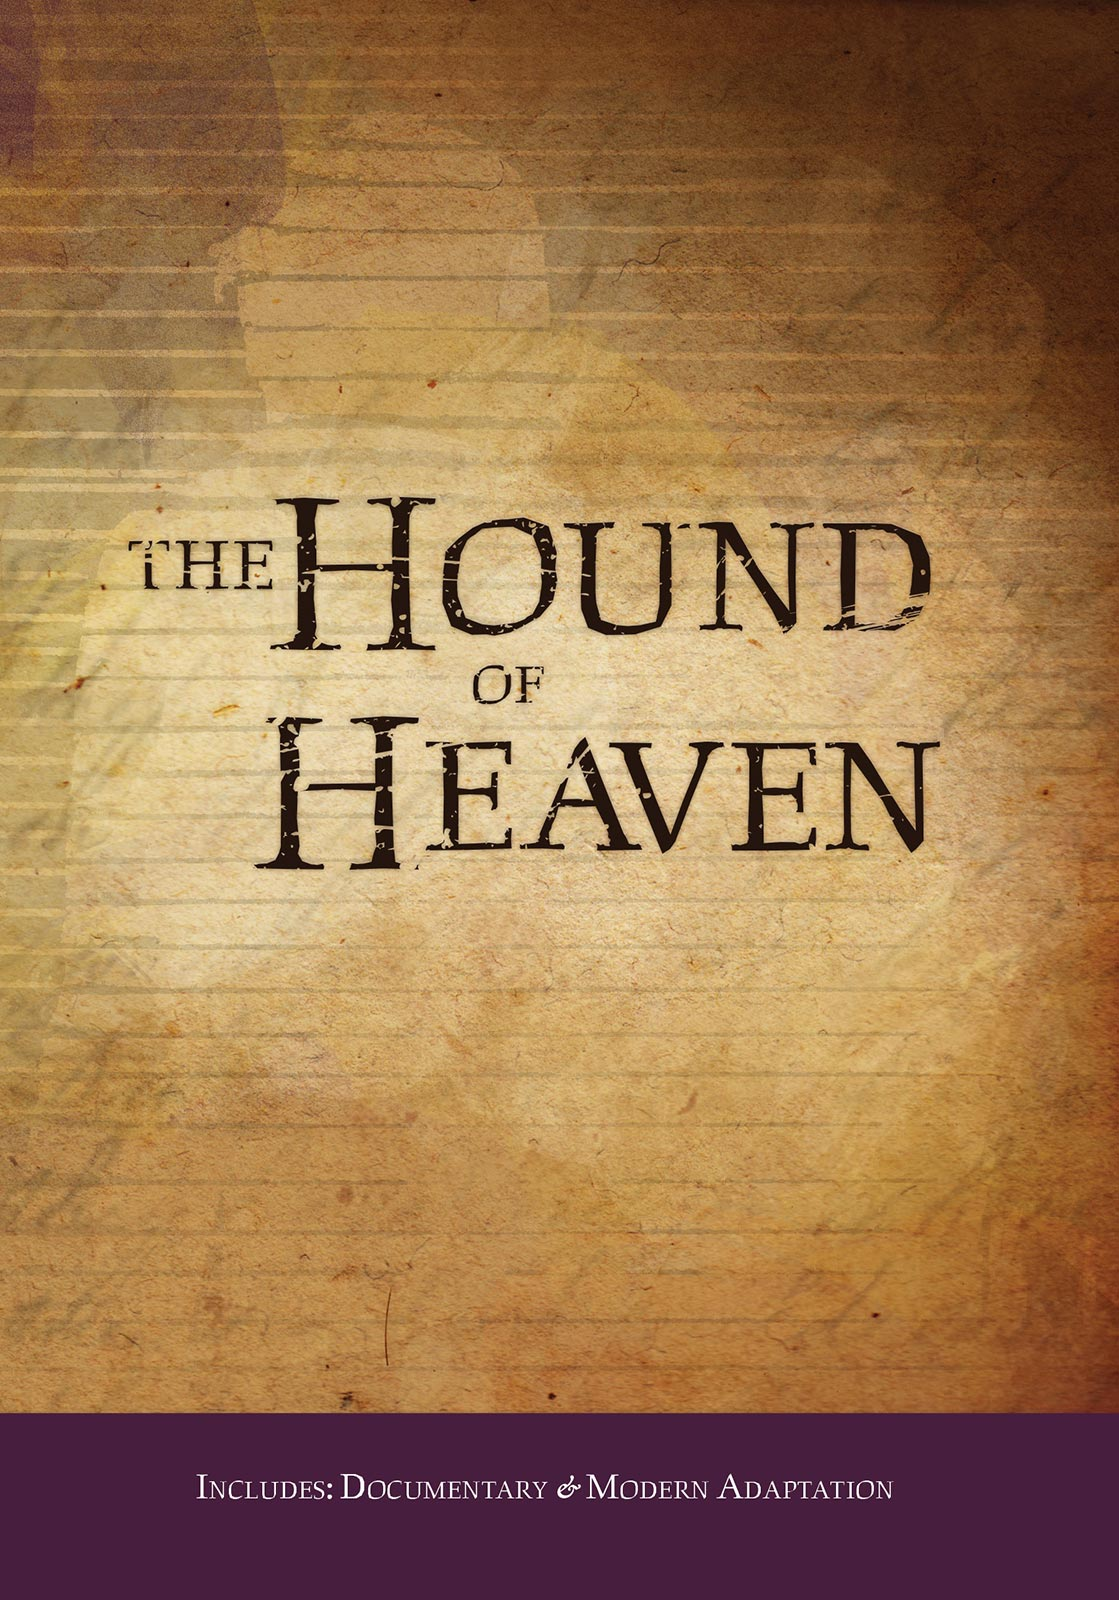 Image result for the hound of heaven